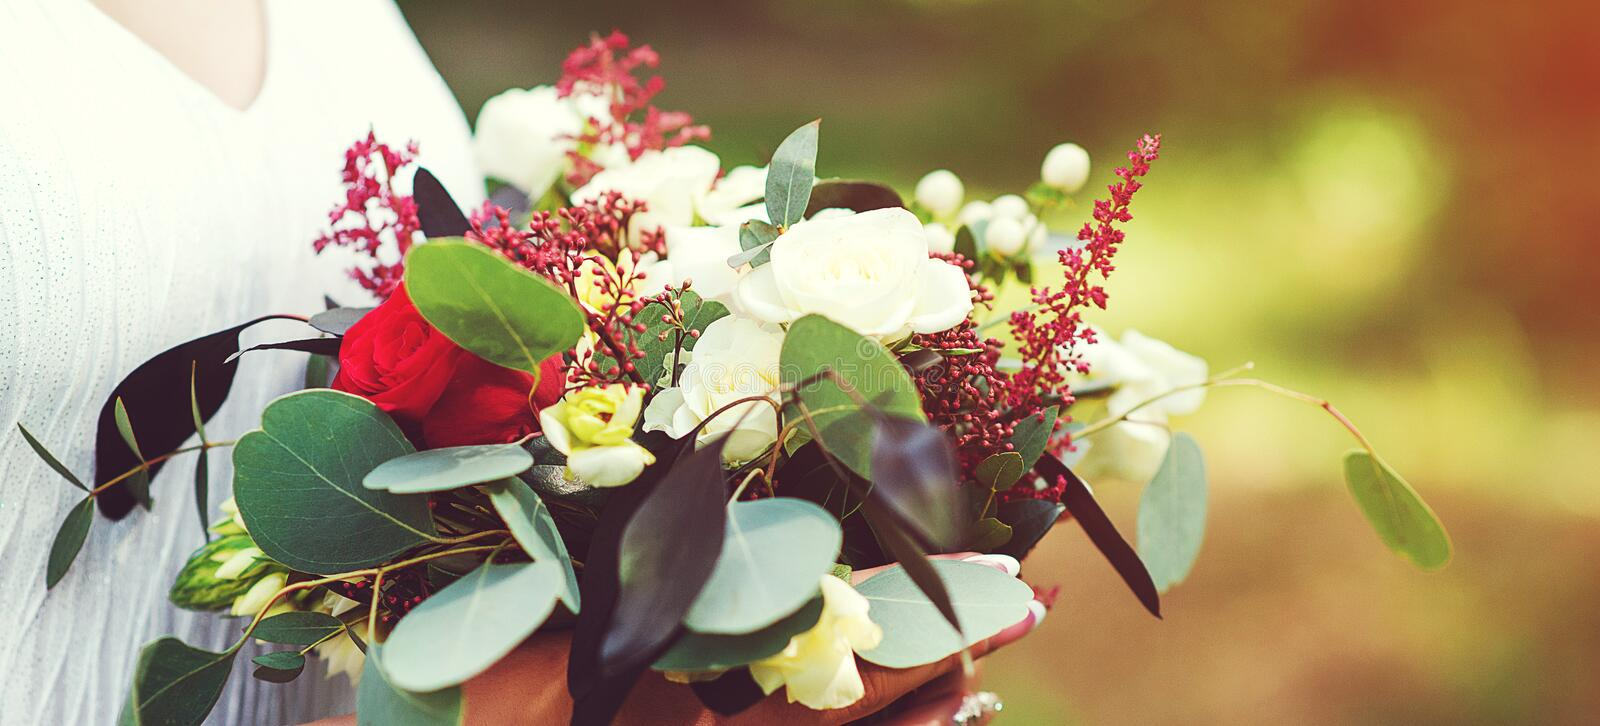 Trendy bridal bouquet.Beautiful bouquet of red flowers. Beautiful flowers in girl hands. Fashion wedding bouquet. Wedding. Decorations. Copy space. Wedding stock images